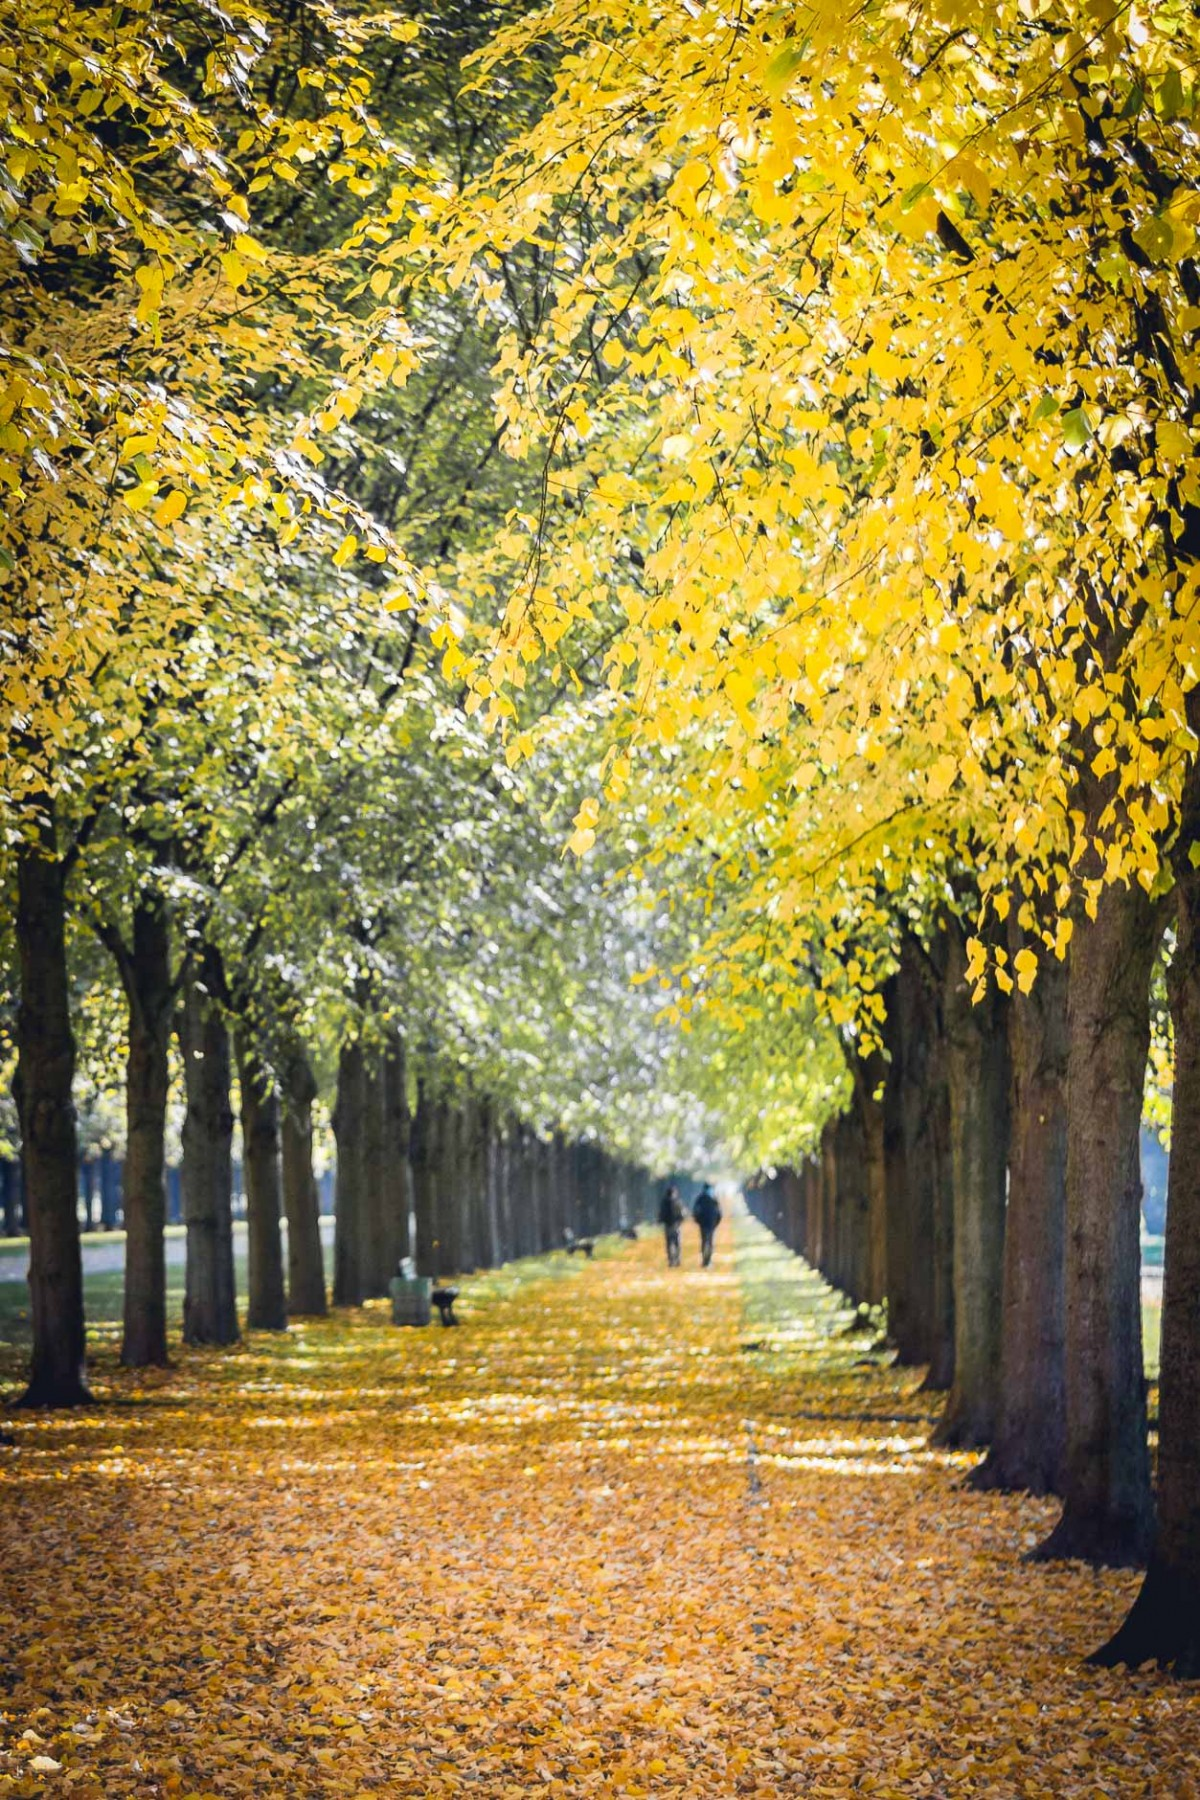 Hannover, Lower Saxony, Germany